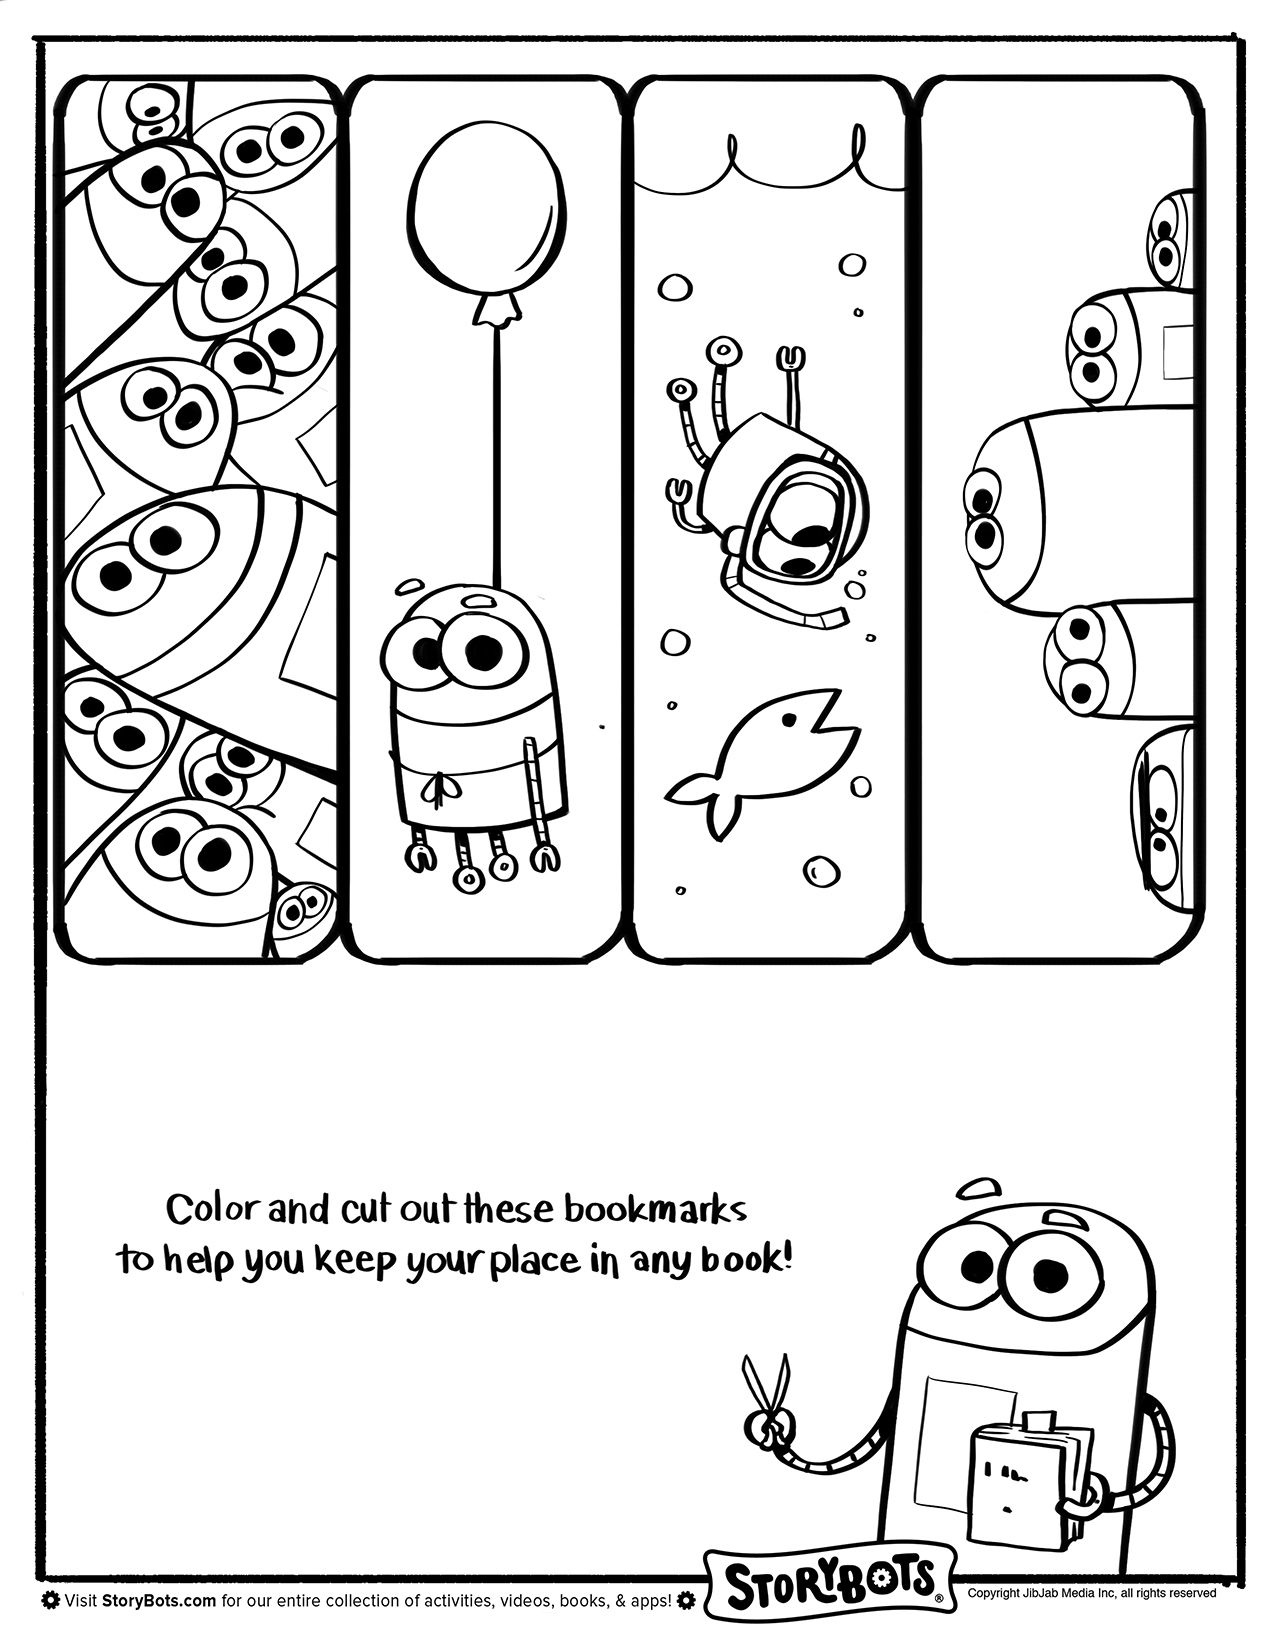 Storybots Bookmarks